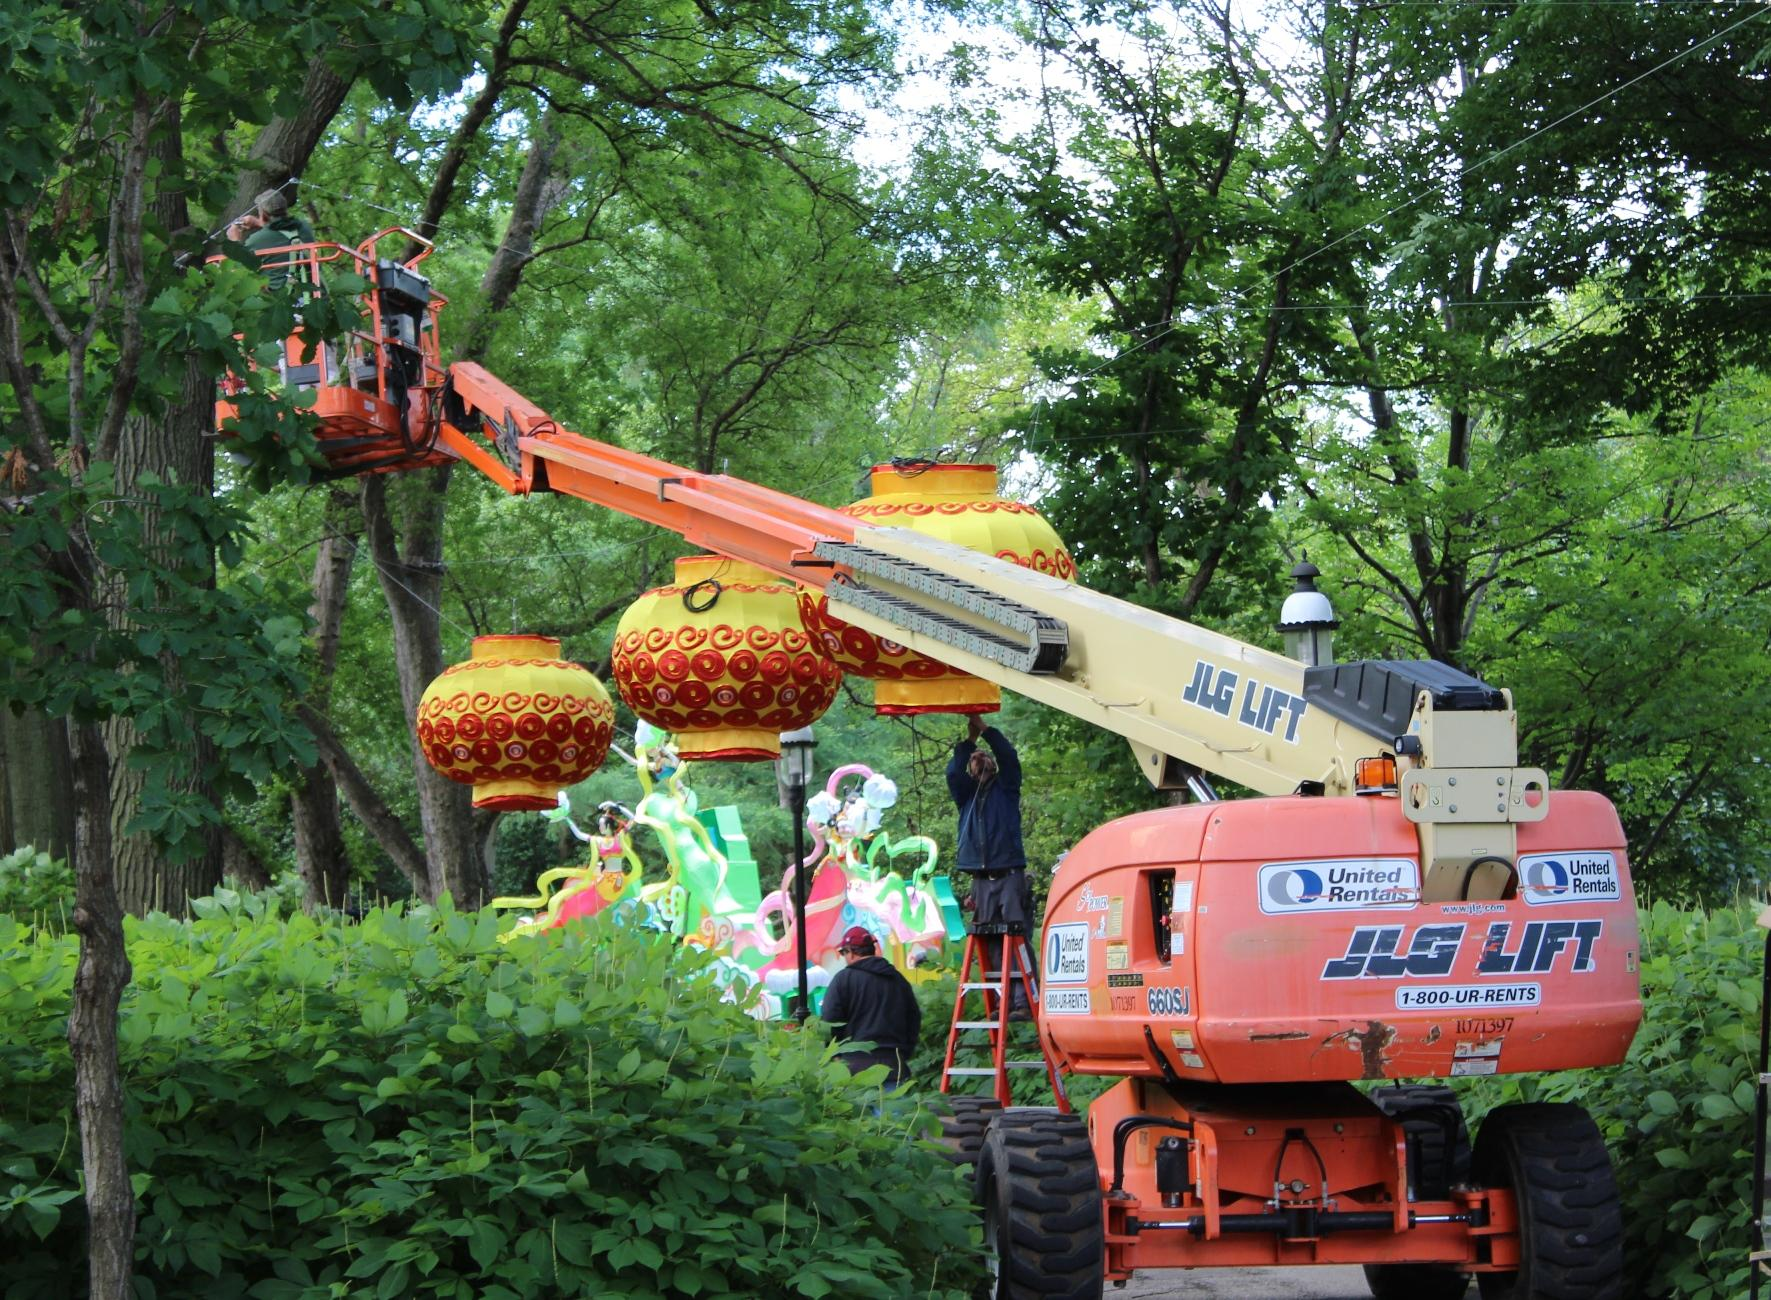 Authentic Chinese lanterns to light up St Louis once again